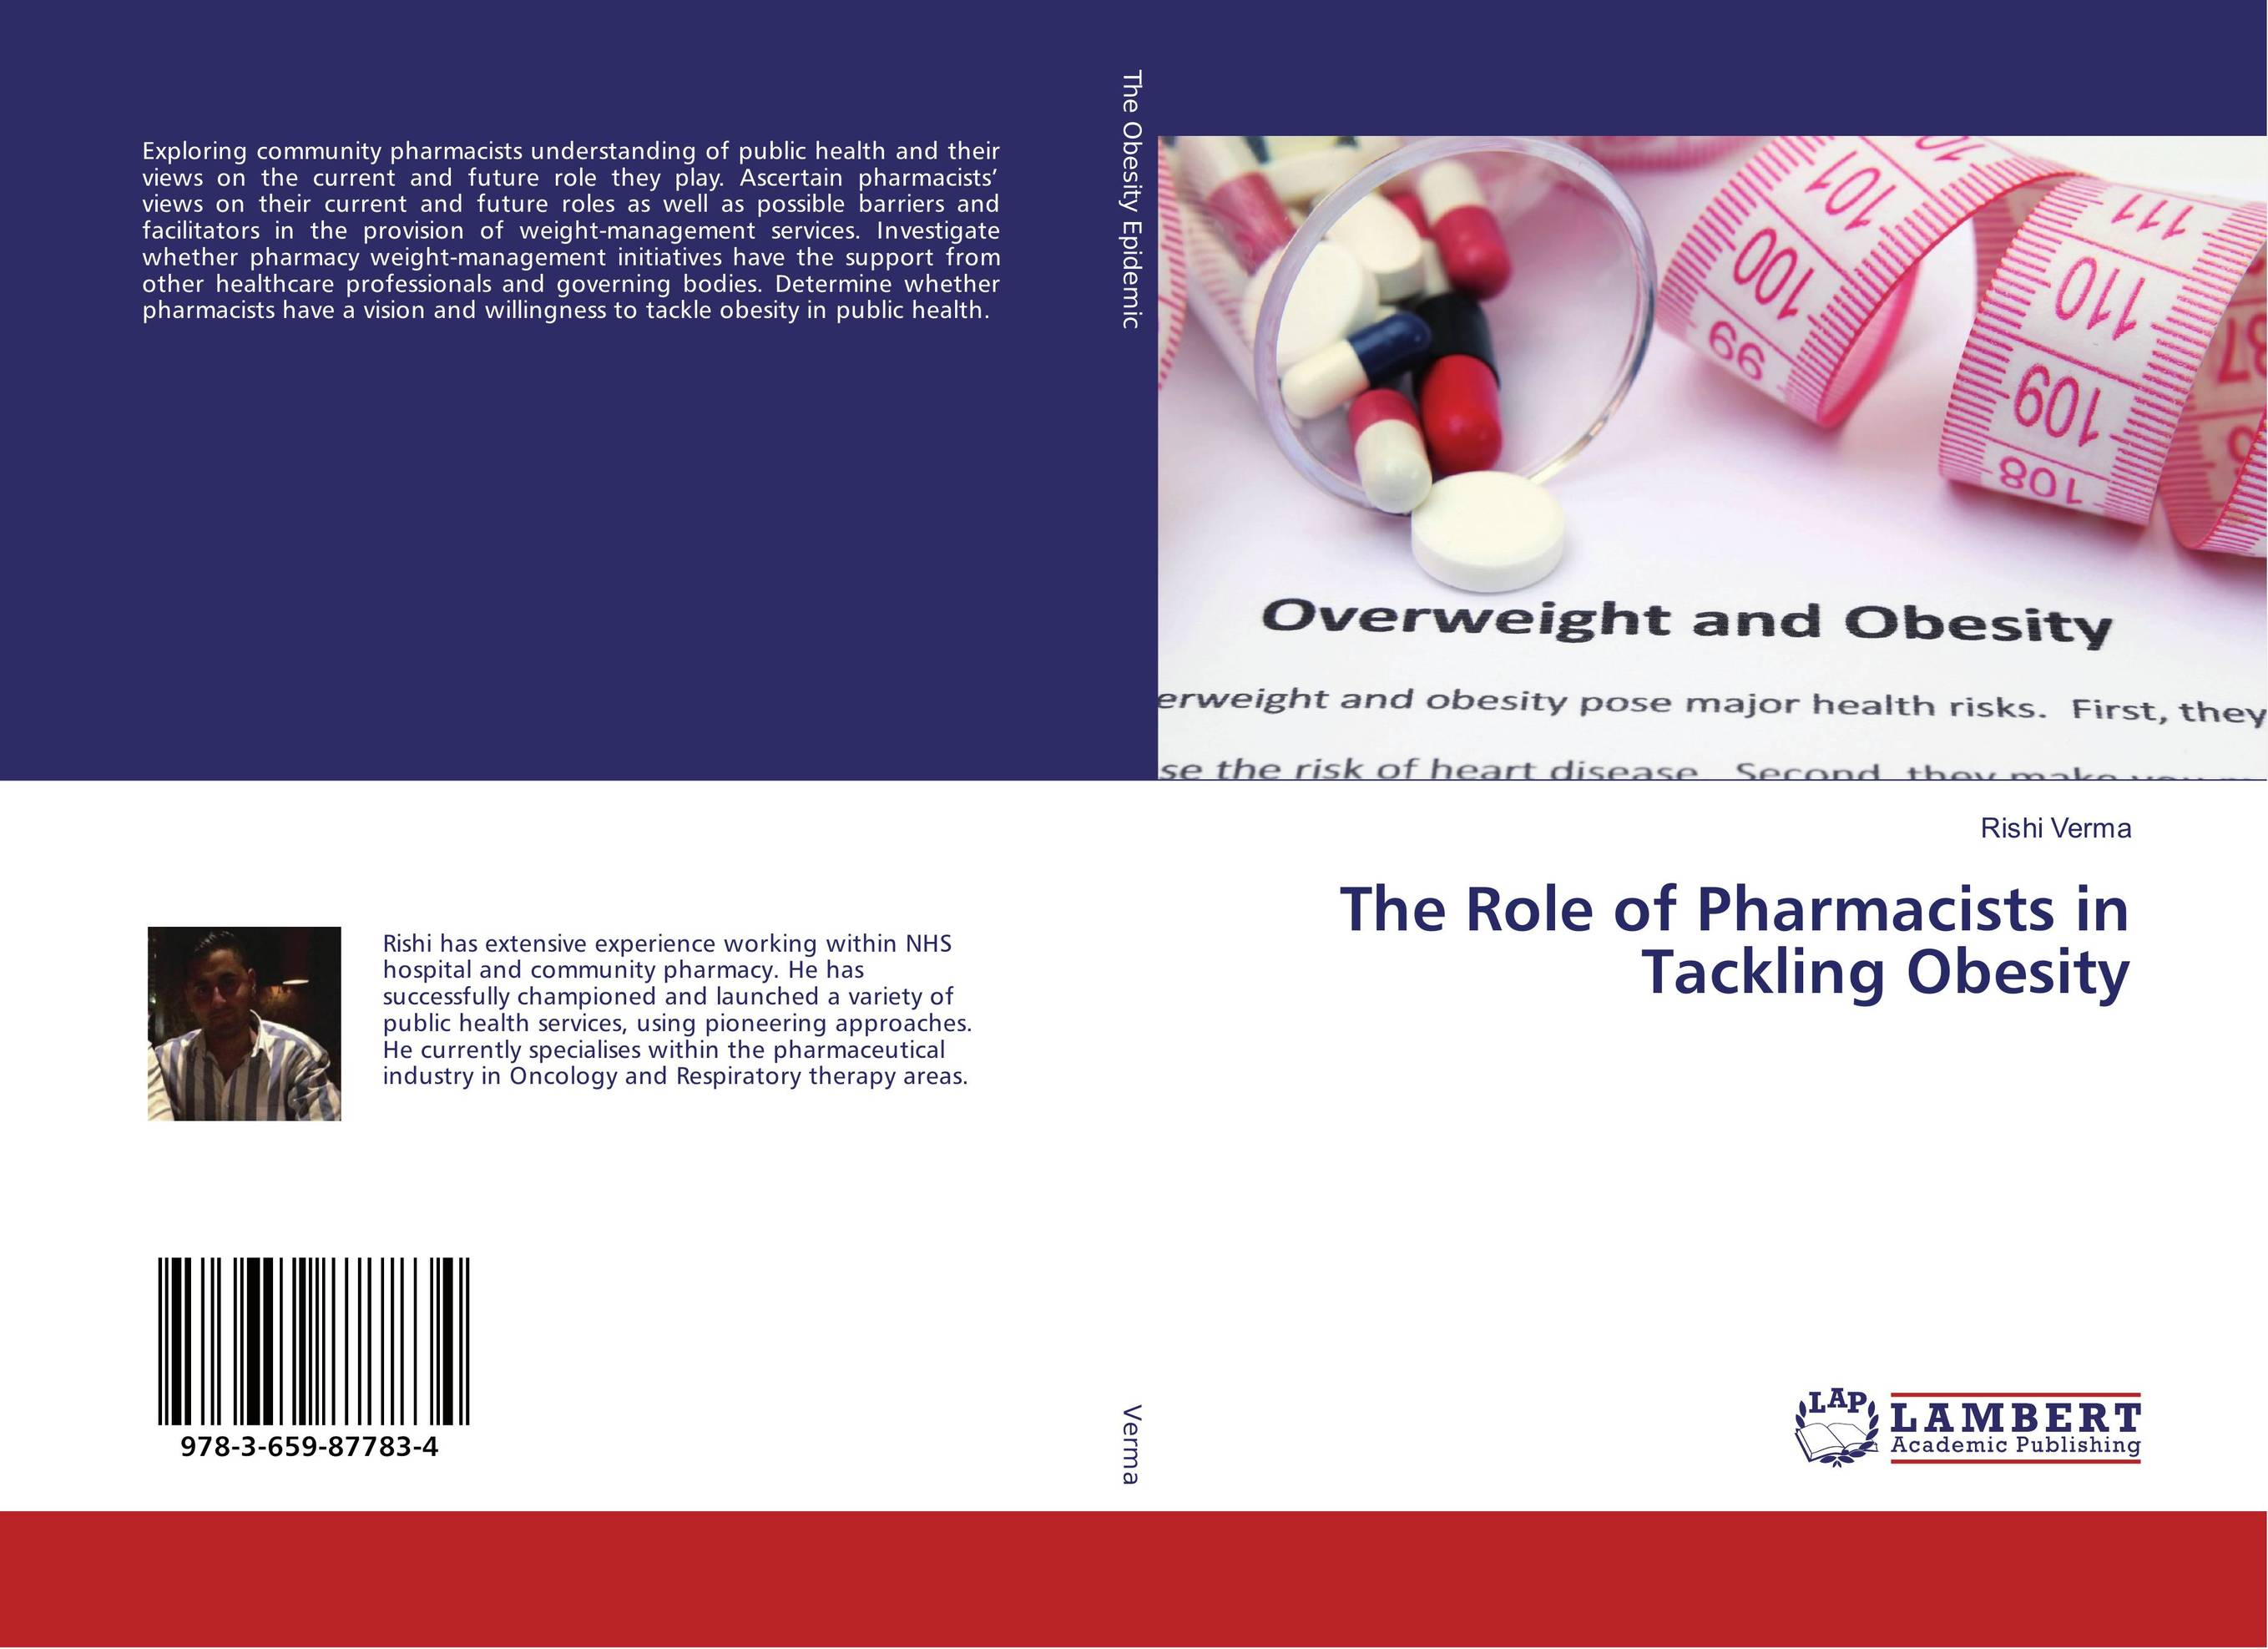 The Role of Pharmacists in Tackling Obesity